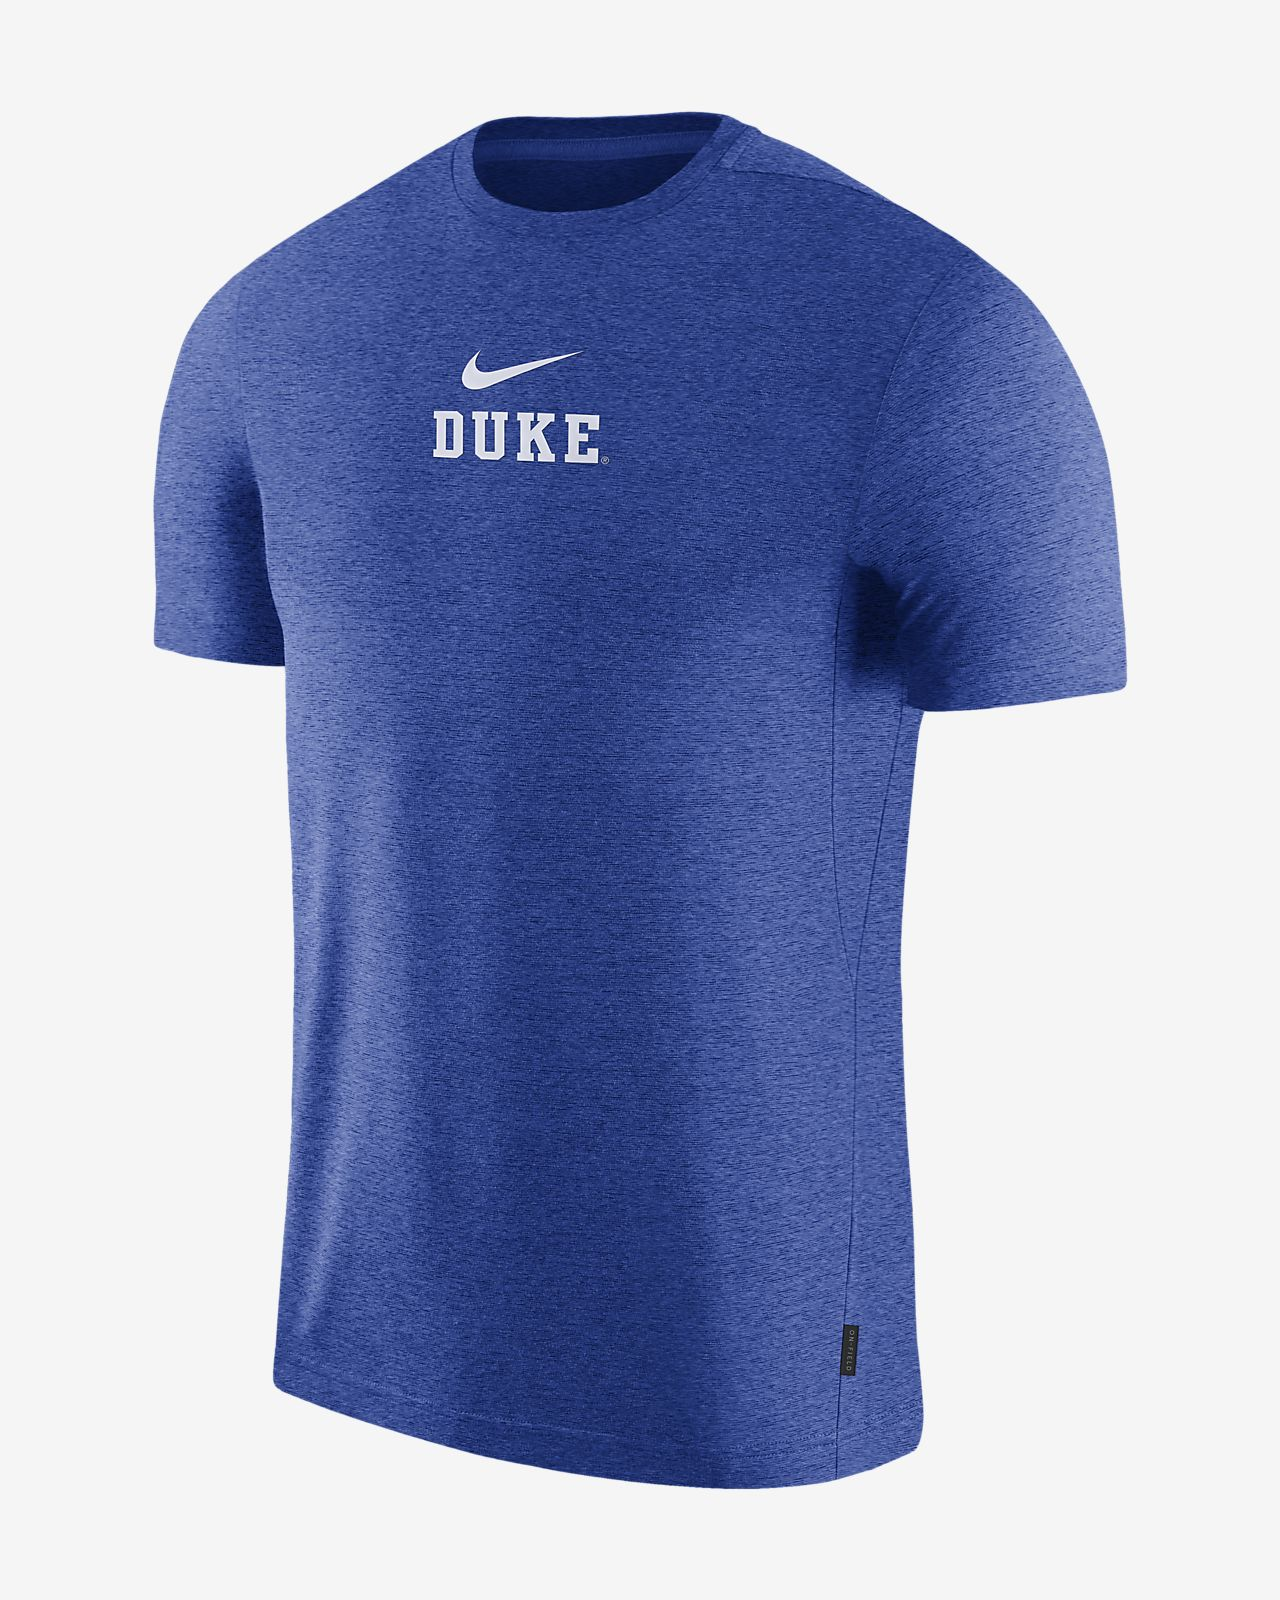 360326a07 Nike College Dri-FIT Coach (Duke) Men's Short-Sleeve Top. Nike.com